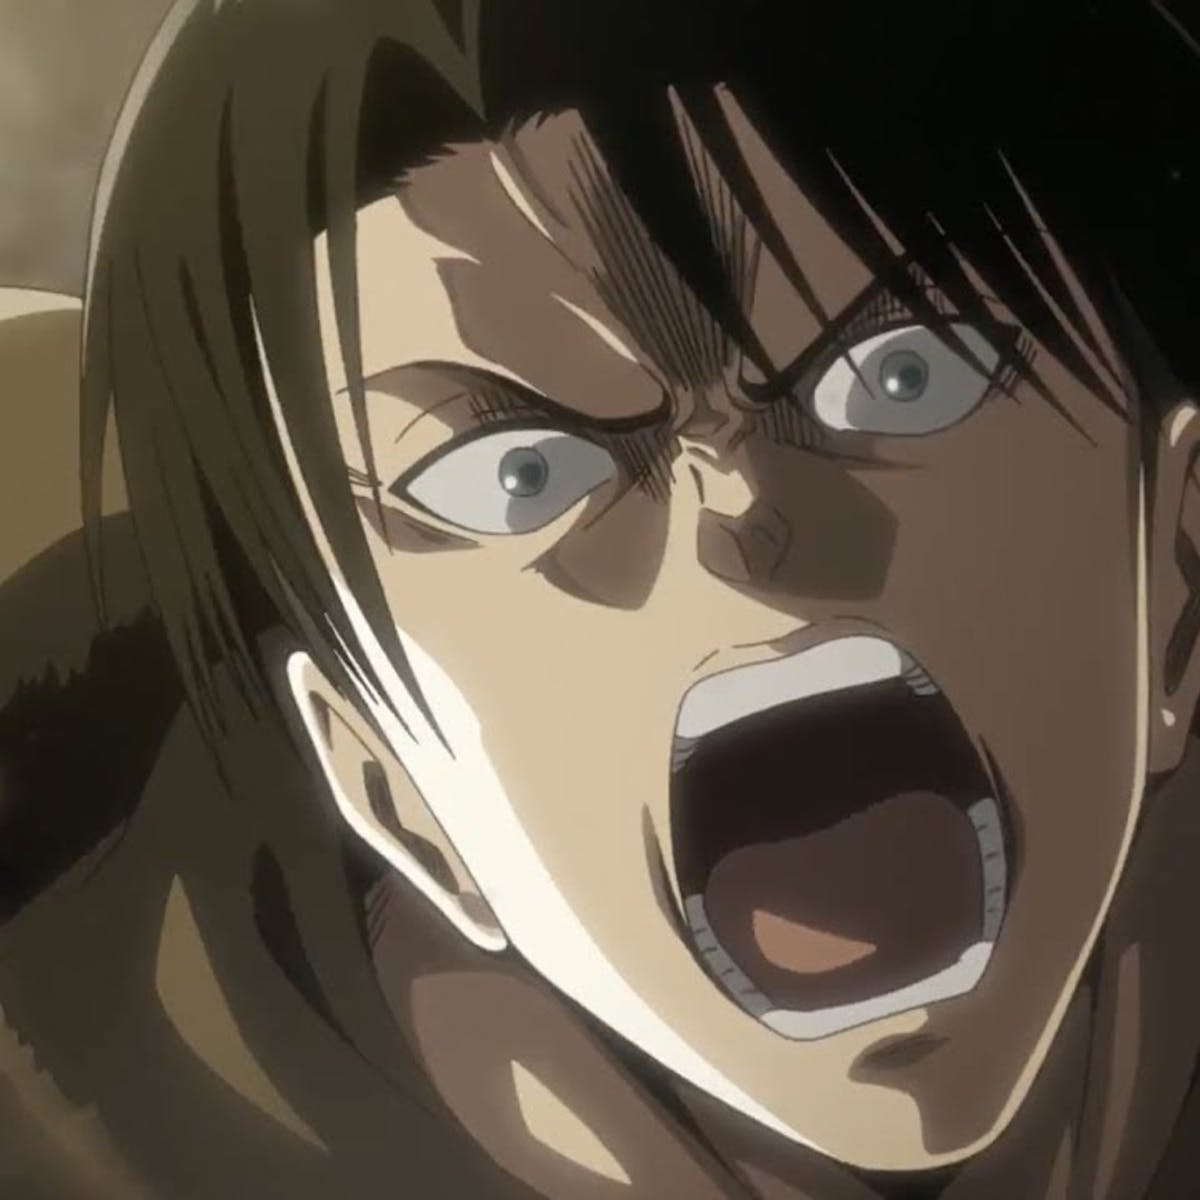 Attack On Titan Season 3 Episode 1 Recap It Starts With A